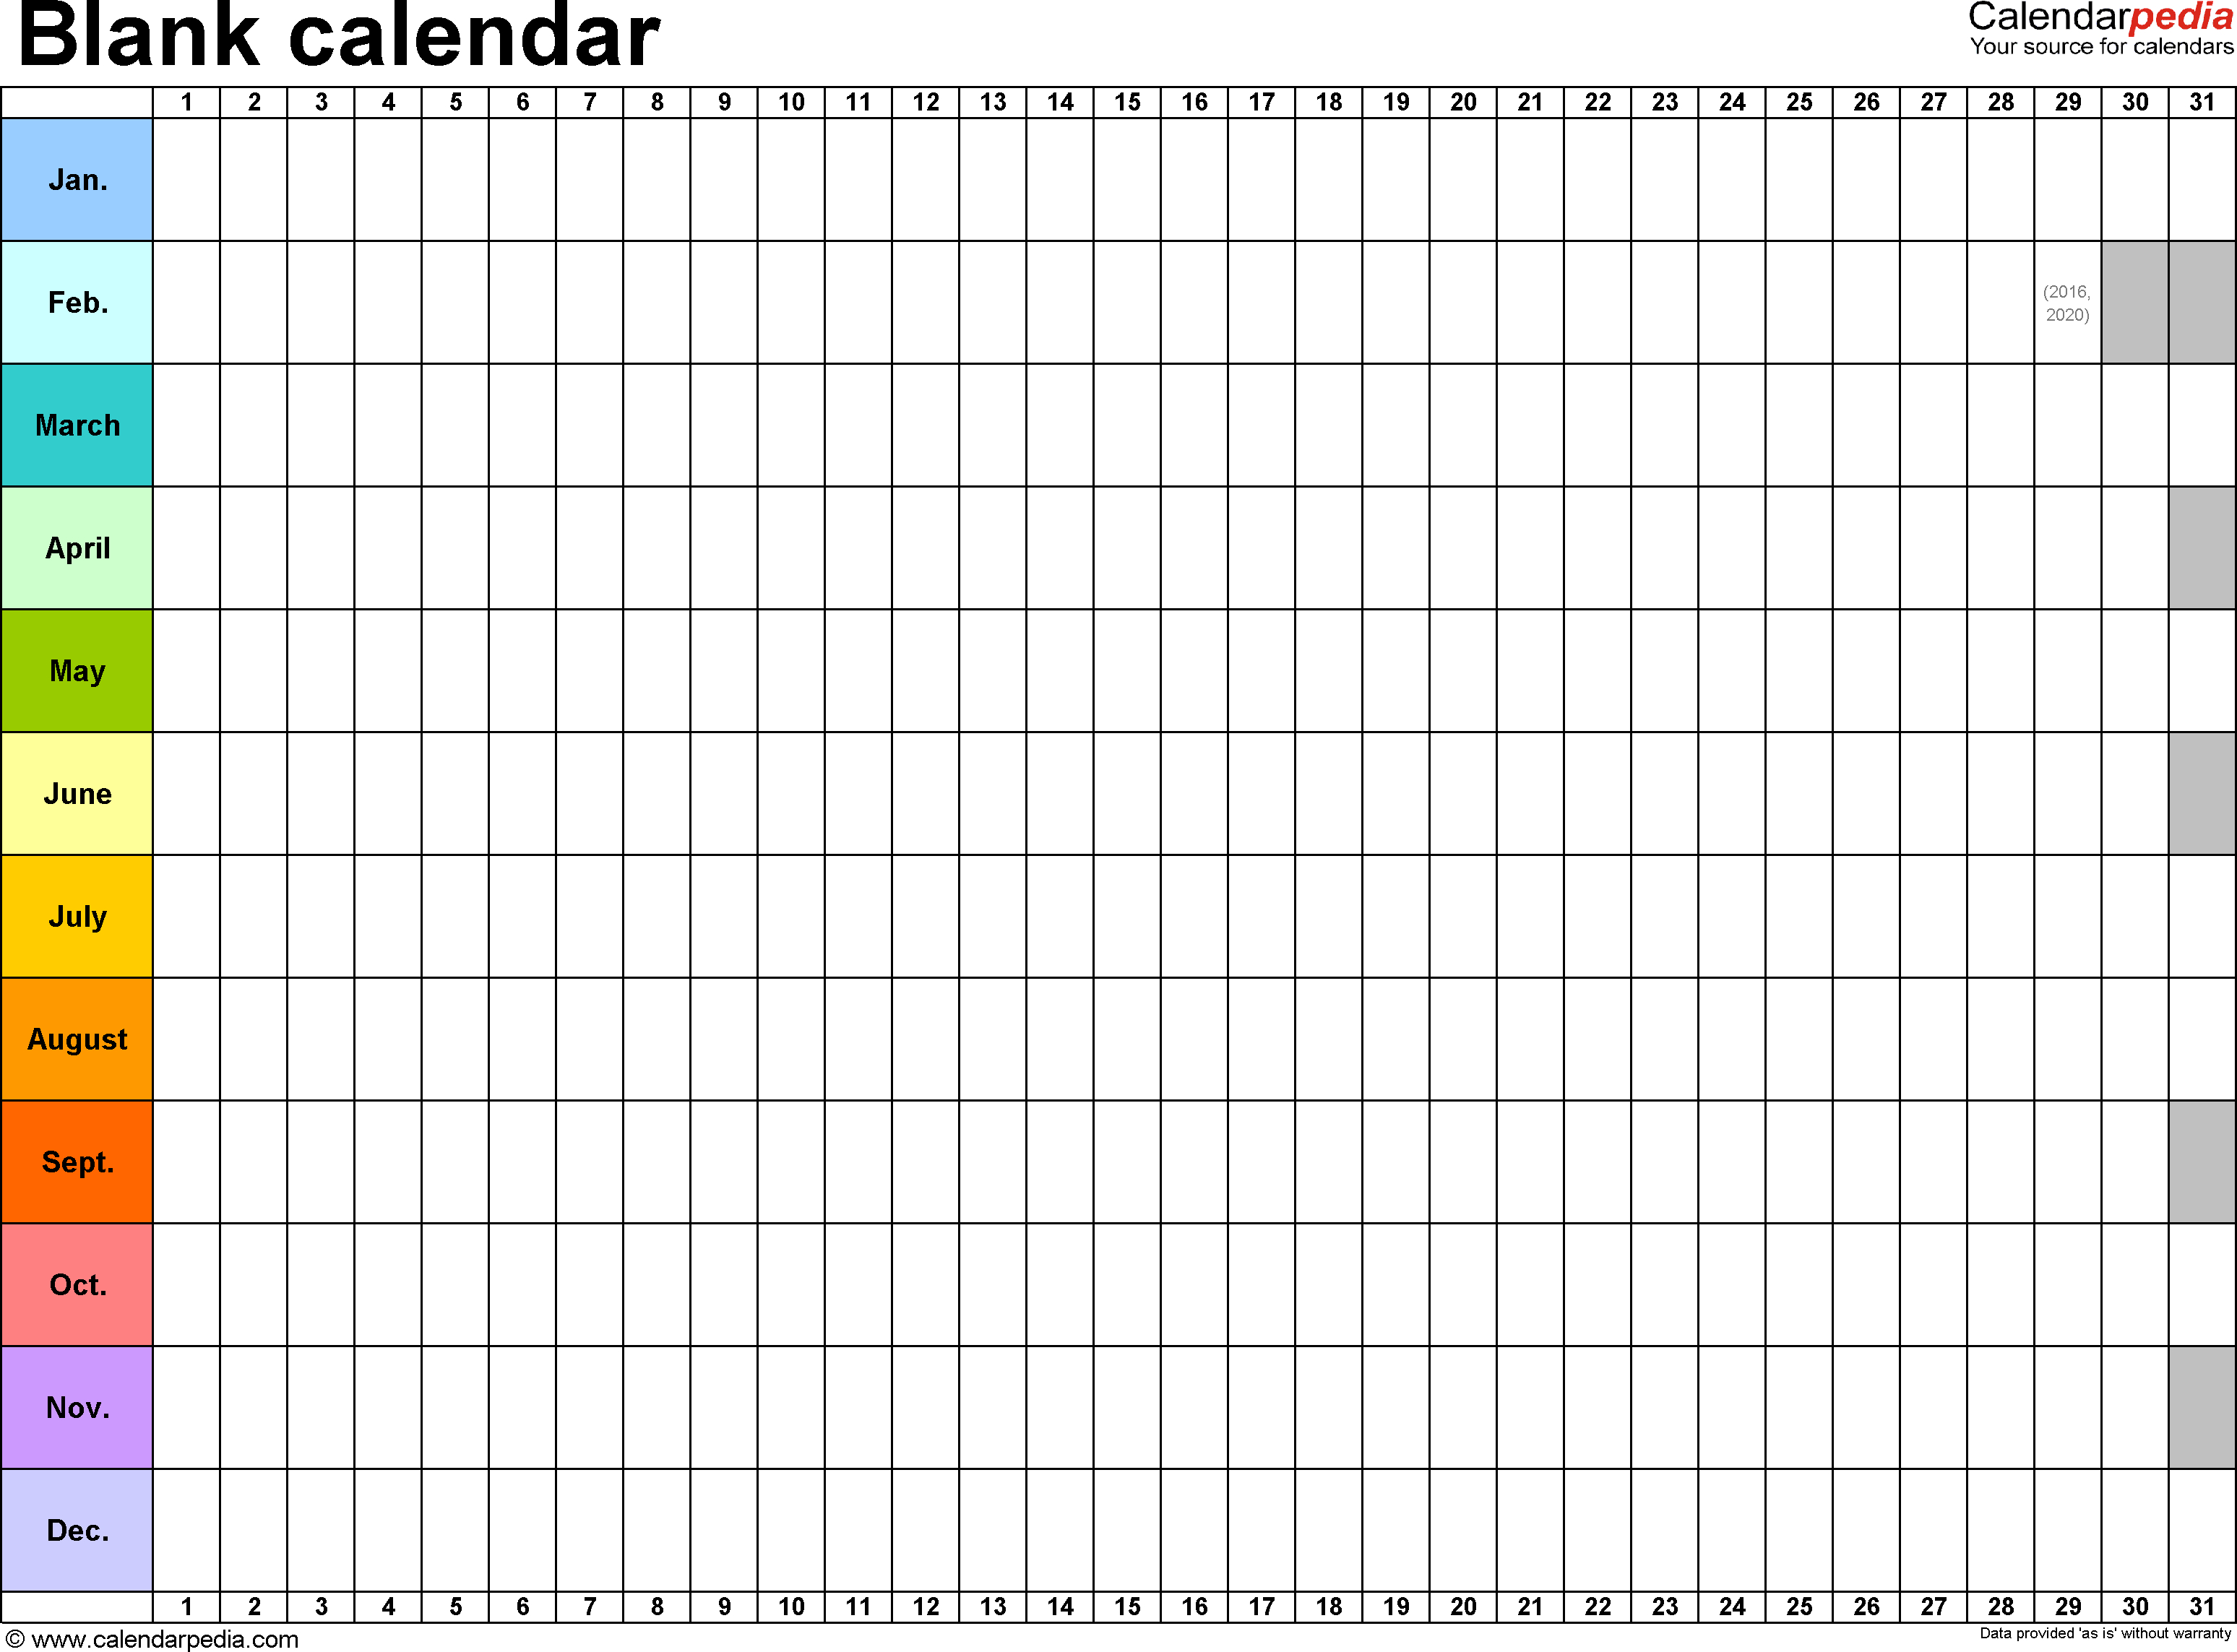 Blank Calendar - 9 Free Printable Microsoft Word Templates pertaining to Blank One Month Calendar Template